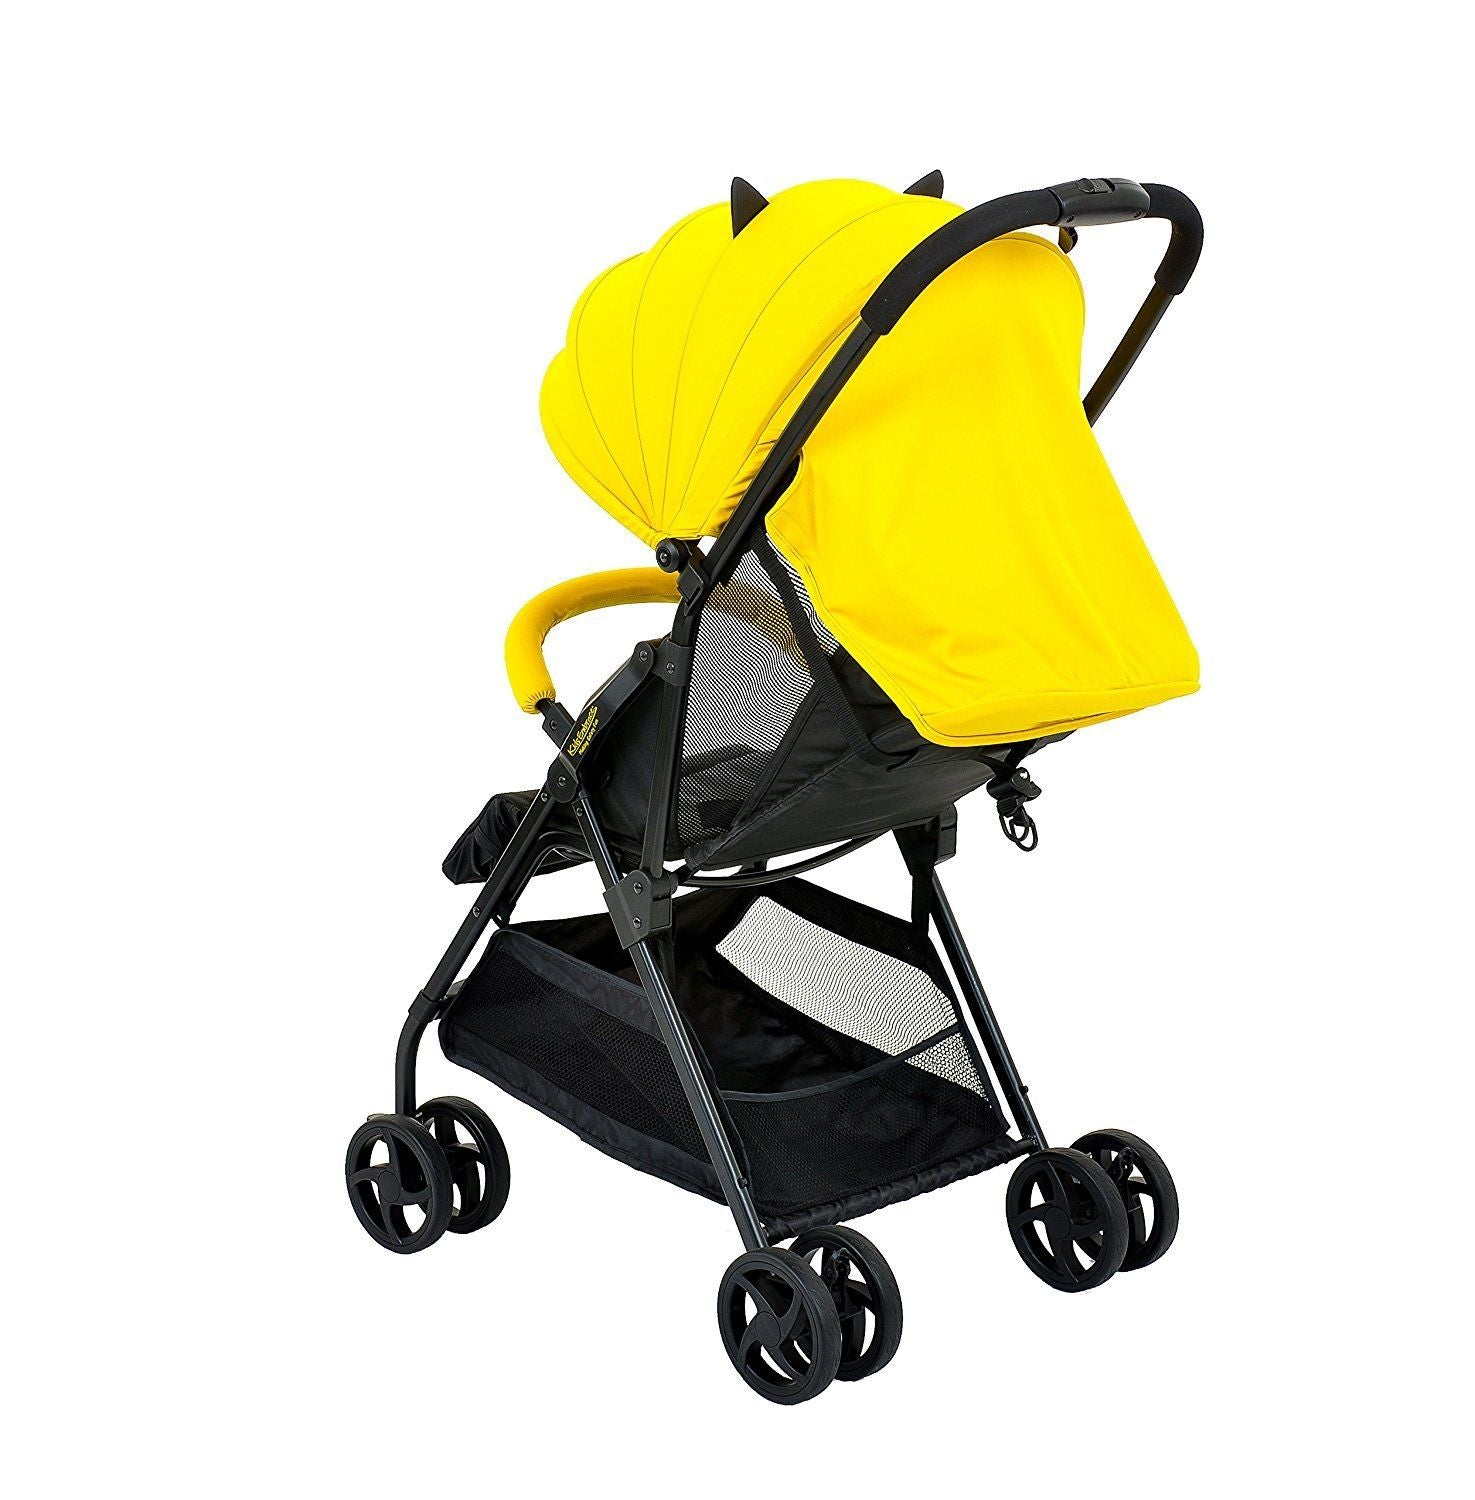 KidsEmbrace Batman Lightweight Compact Stroller, DC Comics in Yellow